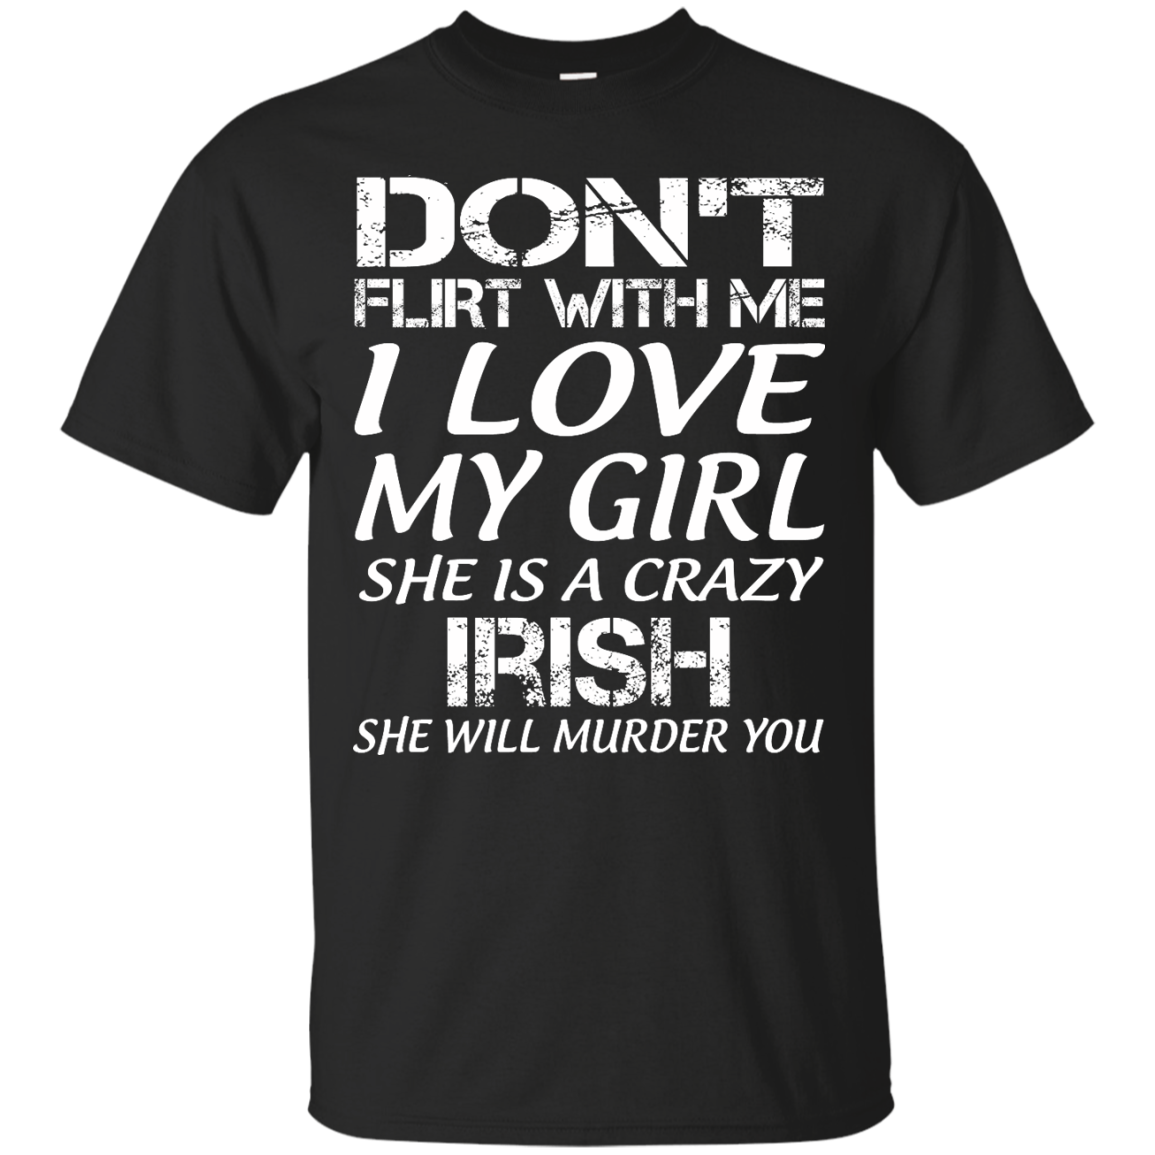 Don't flirt with ... http://99promocode.com/products/dont-flirt-with-me-i-love-my-girl-she-is-a-crazy-irish-she-will-murder-you?utm_campaign=social_autopilot&utm_source=pin&utm_medium=pin Don't flirt with ...